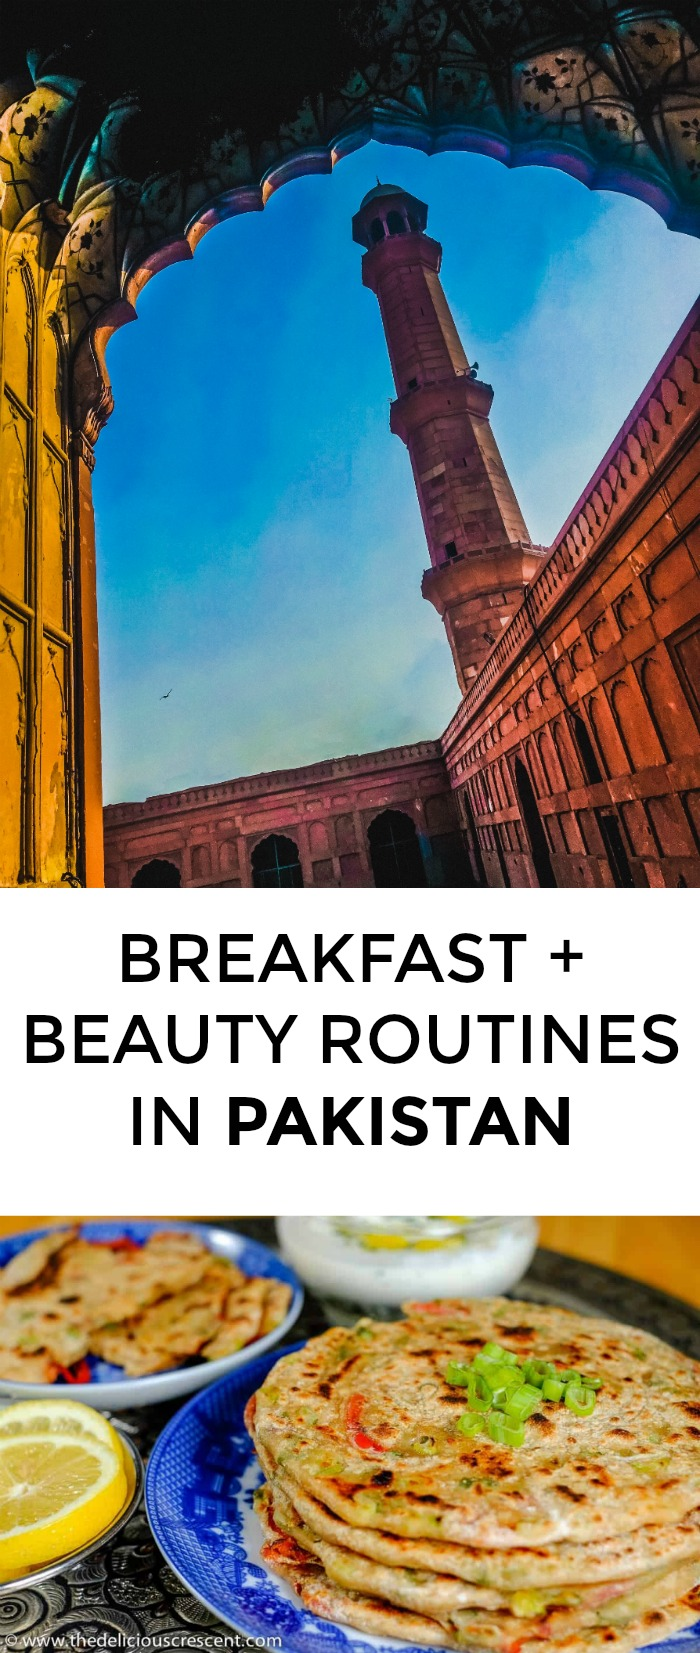 Wondering about Pakistan breakfasts or beauty routines? What makeup and beauty products do Pakistani women swear by? Click through to find out!